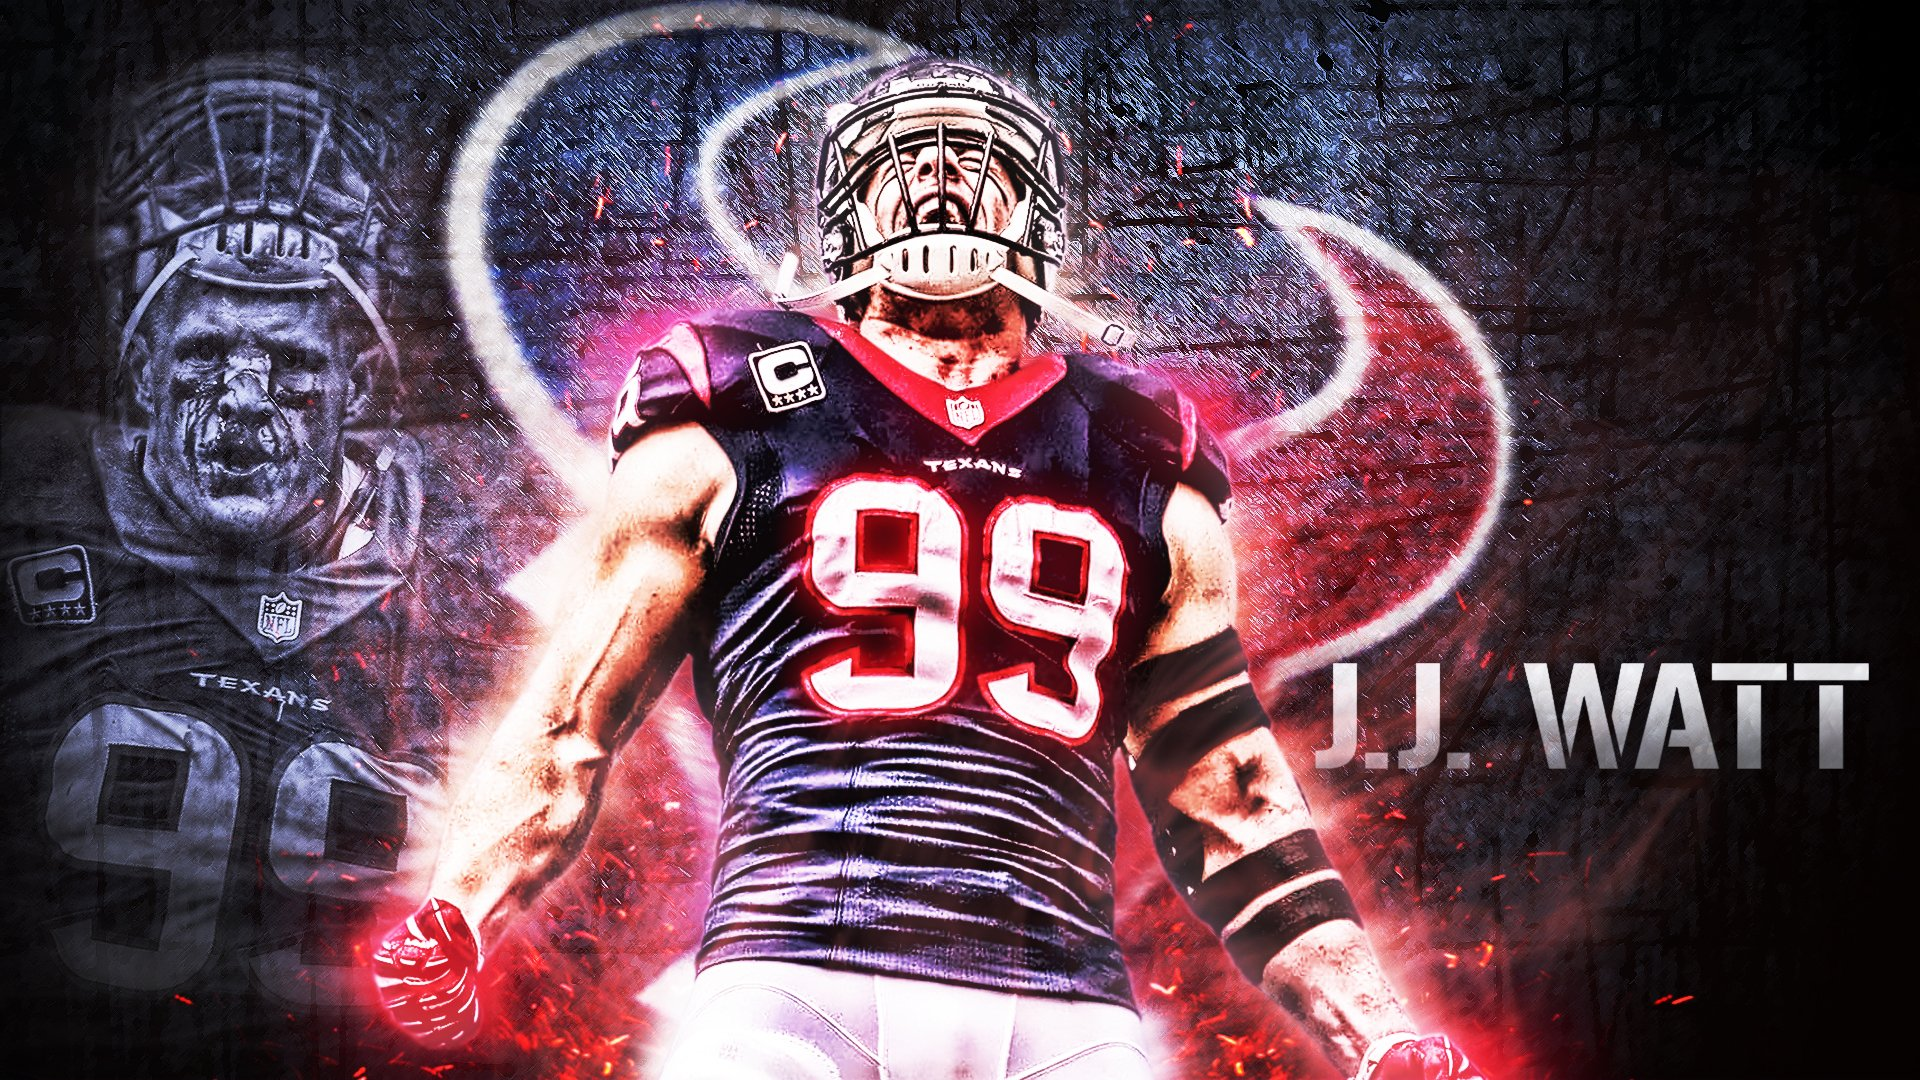 jj watt full hd wallpaper and background image